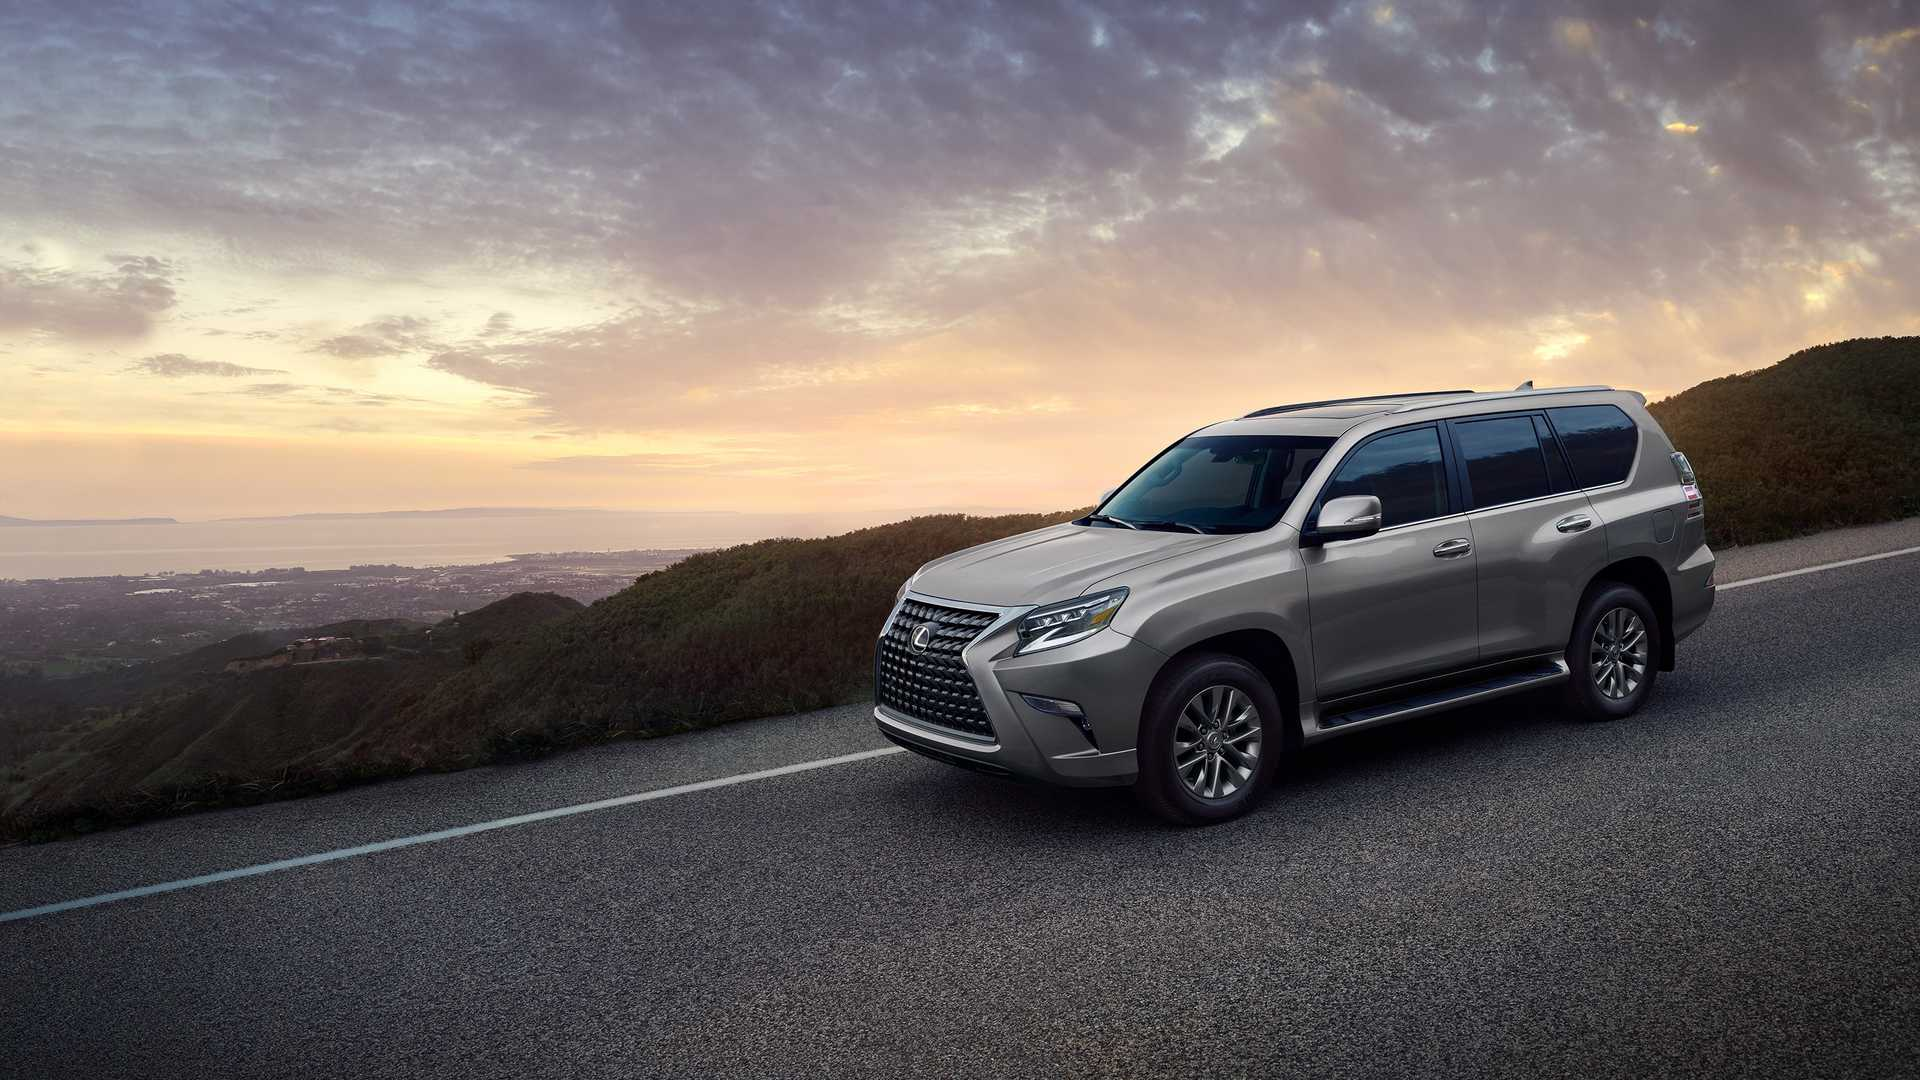 2020 Lexus GX 460: Refreshed, Changes, Price >> 2020 Lexus Gx Revealed With Updated Styling Off Road Package